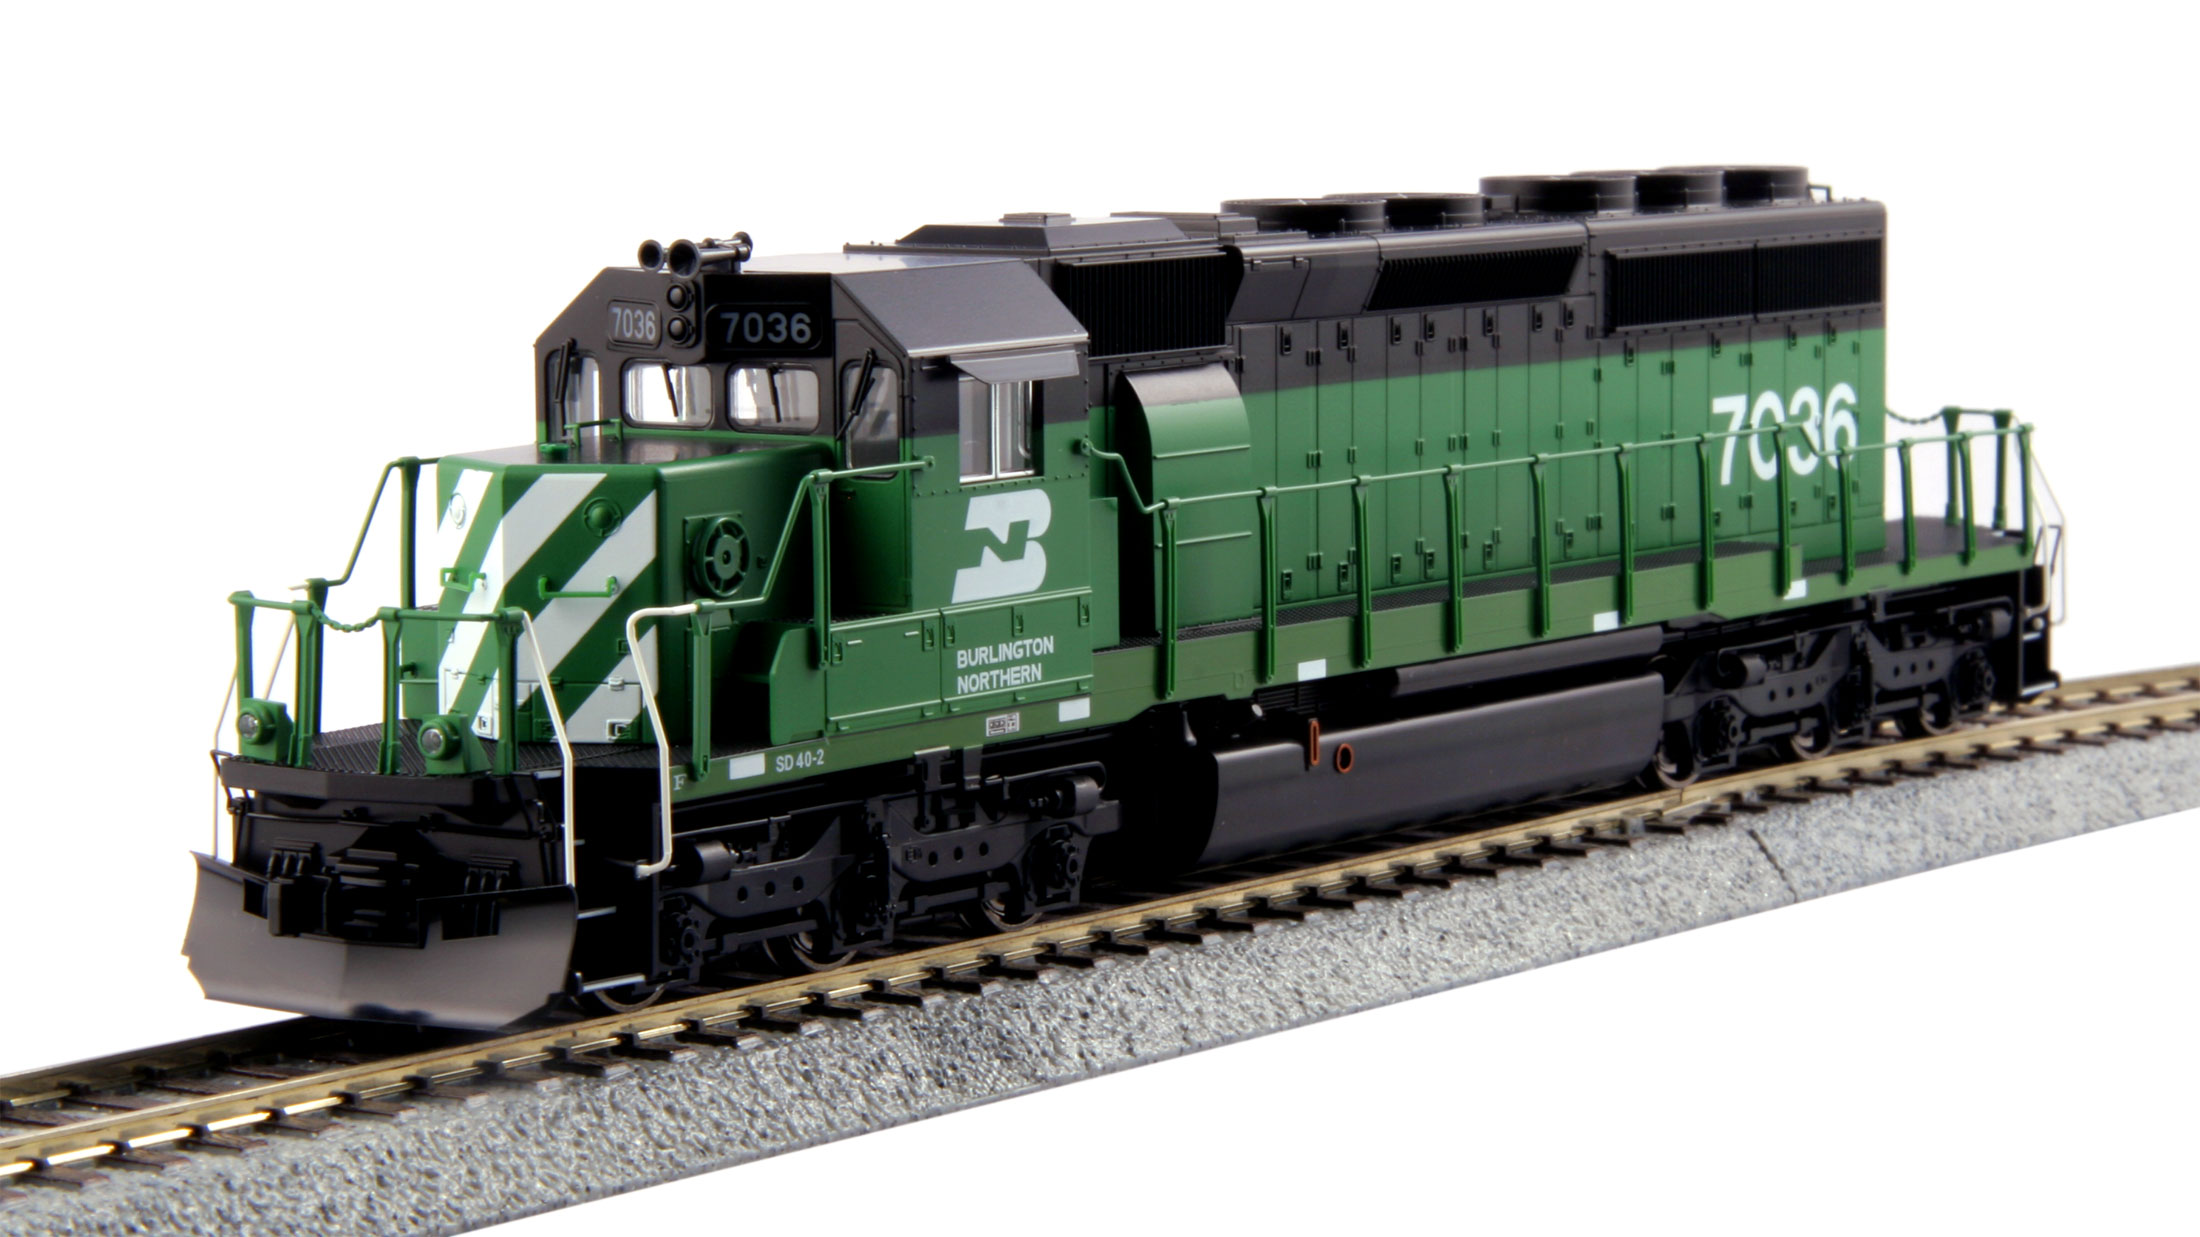 Kato 37-6604LS HO Burlington Northern EMD SD40-2 Standard #7036 This is a Kato 37-6604LS HO Scale Burlington Northern EMD SD40-2 Standard with ESU Loksound DCC + Sound #7036 . Model Features: All handrails and grab irons are factory installed, making the model ready to go out of the box, Functional ditch lights that can be switched between alternating and steady modes on-the-fly, Great for pulling our Gunderson MAXI-IV double stack well cars, Locomotives feature directional Golden White LED headlights and illuminated preprinted numberboards, Sound friendly construction with a speaker housing in the fuel tank and Ditch lights can be synchronized with horn or bell functions with the installation of an 8-pin sound decoder.Condition: Factory New (C-9All original; unused; factory rubs and evidence of handling, shipping and factory test run.Standards for all toy train related accessory items apply to the visual appearance of the item and do not consider the operating functionality of the equipment.Condition and Grading Standards are subjective, at best, and are intended to act as a guide. )Operational Status: FunctionalThis item is brand new from the factory.Original Box: Yes (P-9May have store stamps and price tags. Has inner liners.)Manufacturer: KatoModel Number: 376604LSMSRP: $285.00Scale/Era: HO ModernModel Type: Diesel LocoAvailability: Ships in 1 Business Day!The Trainz SKU for this item is P12190990. Track: 12190990 - No Location Assigned - 001 - TrainzAuctionGroup00UNK - TDIDUNK